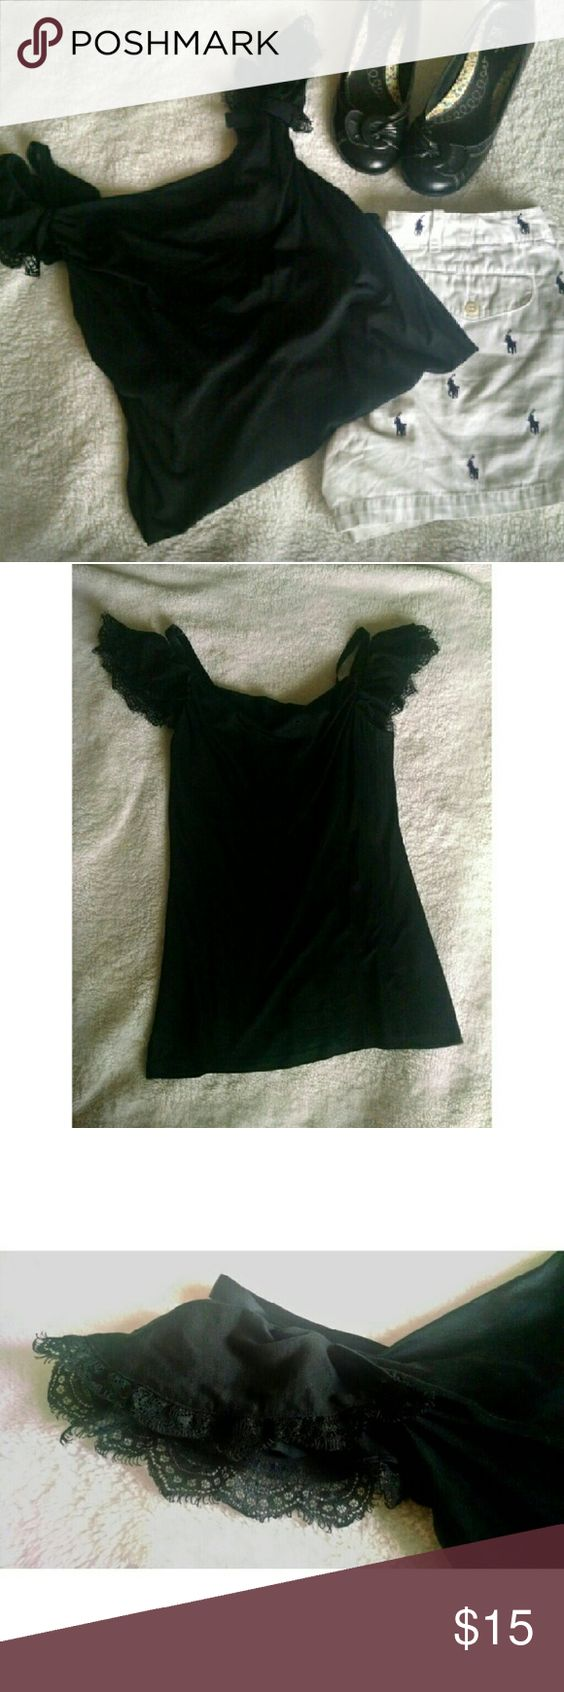 Ralph Lauren Rugby Black Tank Top-Like New Ralph Lauren Rugby Black Tank Top. Only worn once!! Size Small, fits more like an extra small, though it will fit up to a medium. Falls right at hips. It has a cowl neck of sorts, a ribbon shoulder strap with the lace/cloth strap that can stay on the shoulder or hang off the shoulder. No stains rips or tears. Material is 58% Silk, 42% Cotton. Please let me know if you have any questions :)! Ralph Lauren Tops Blouses